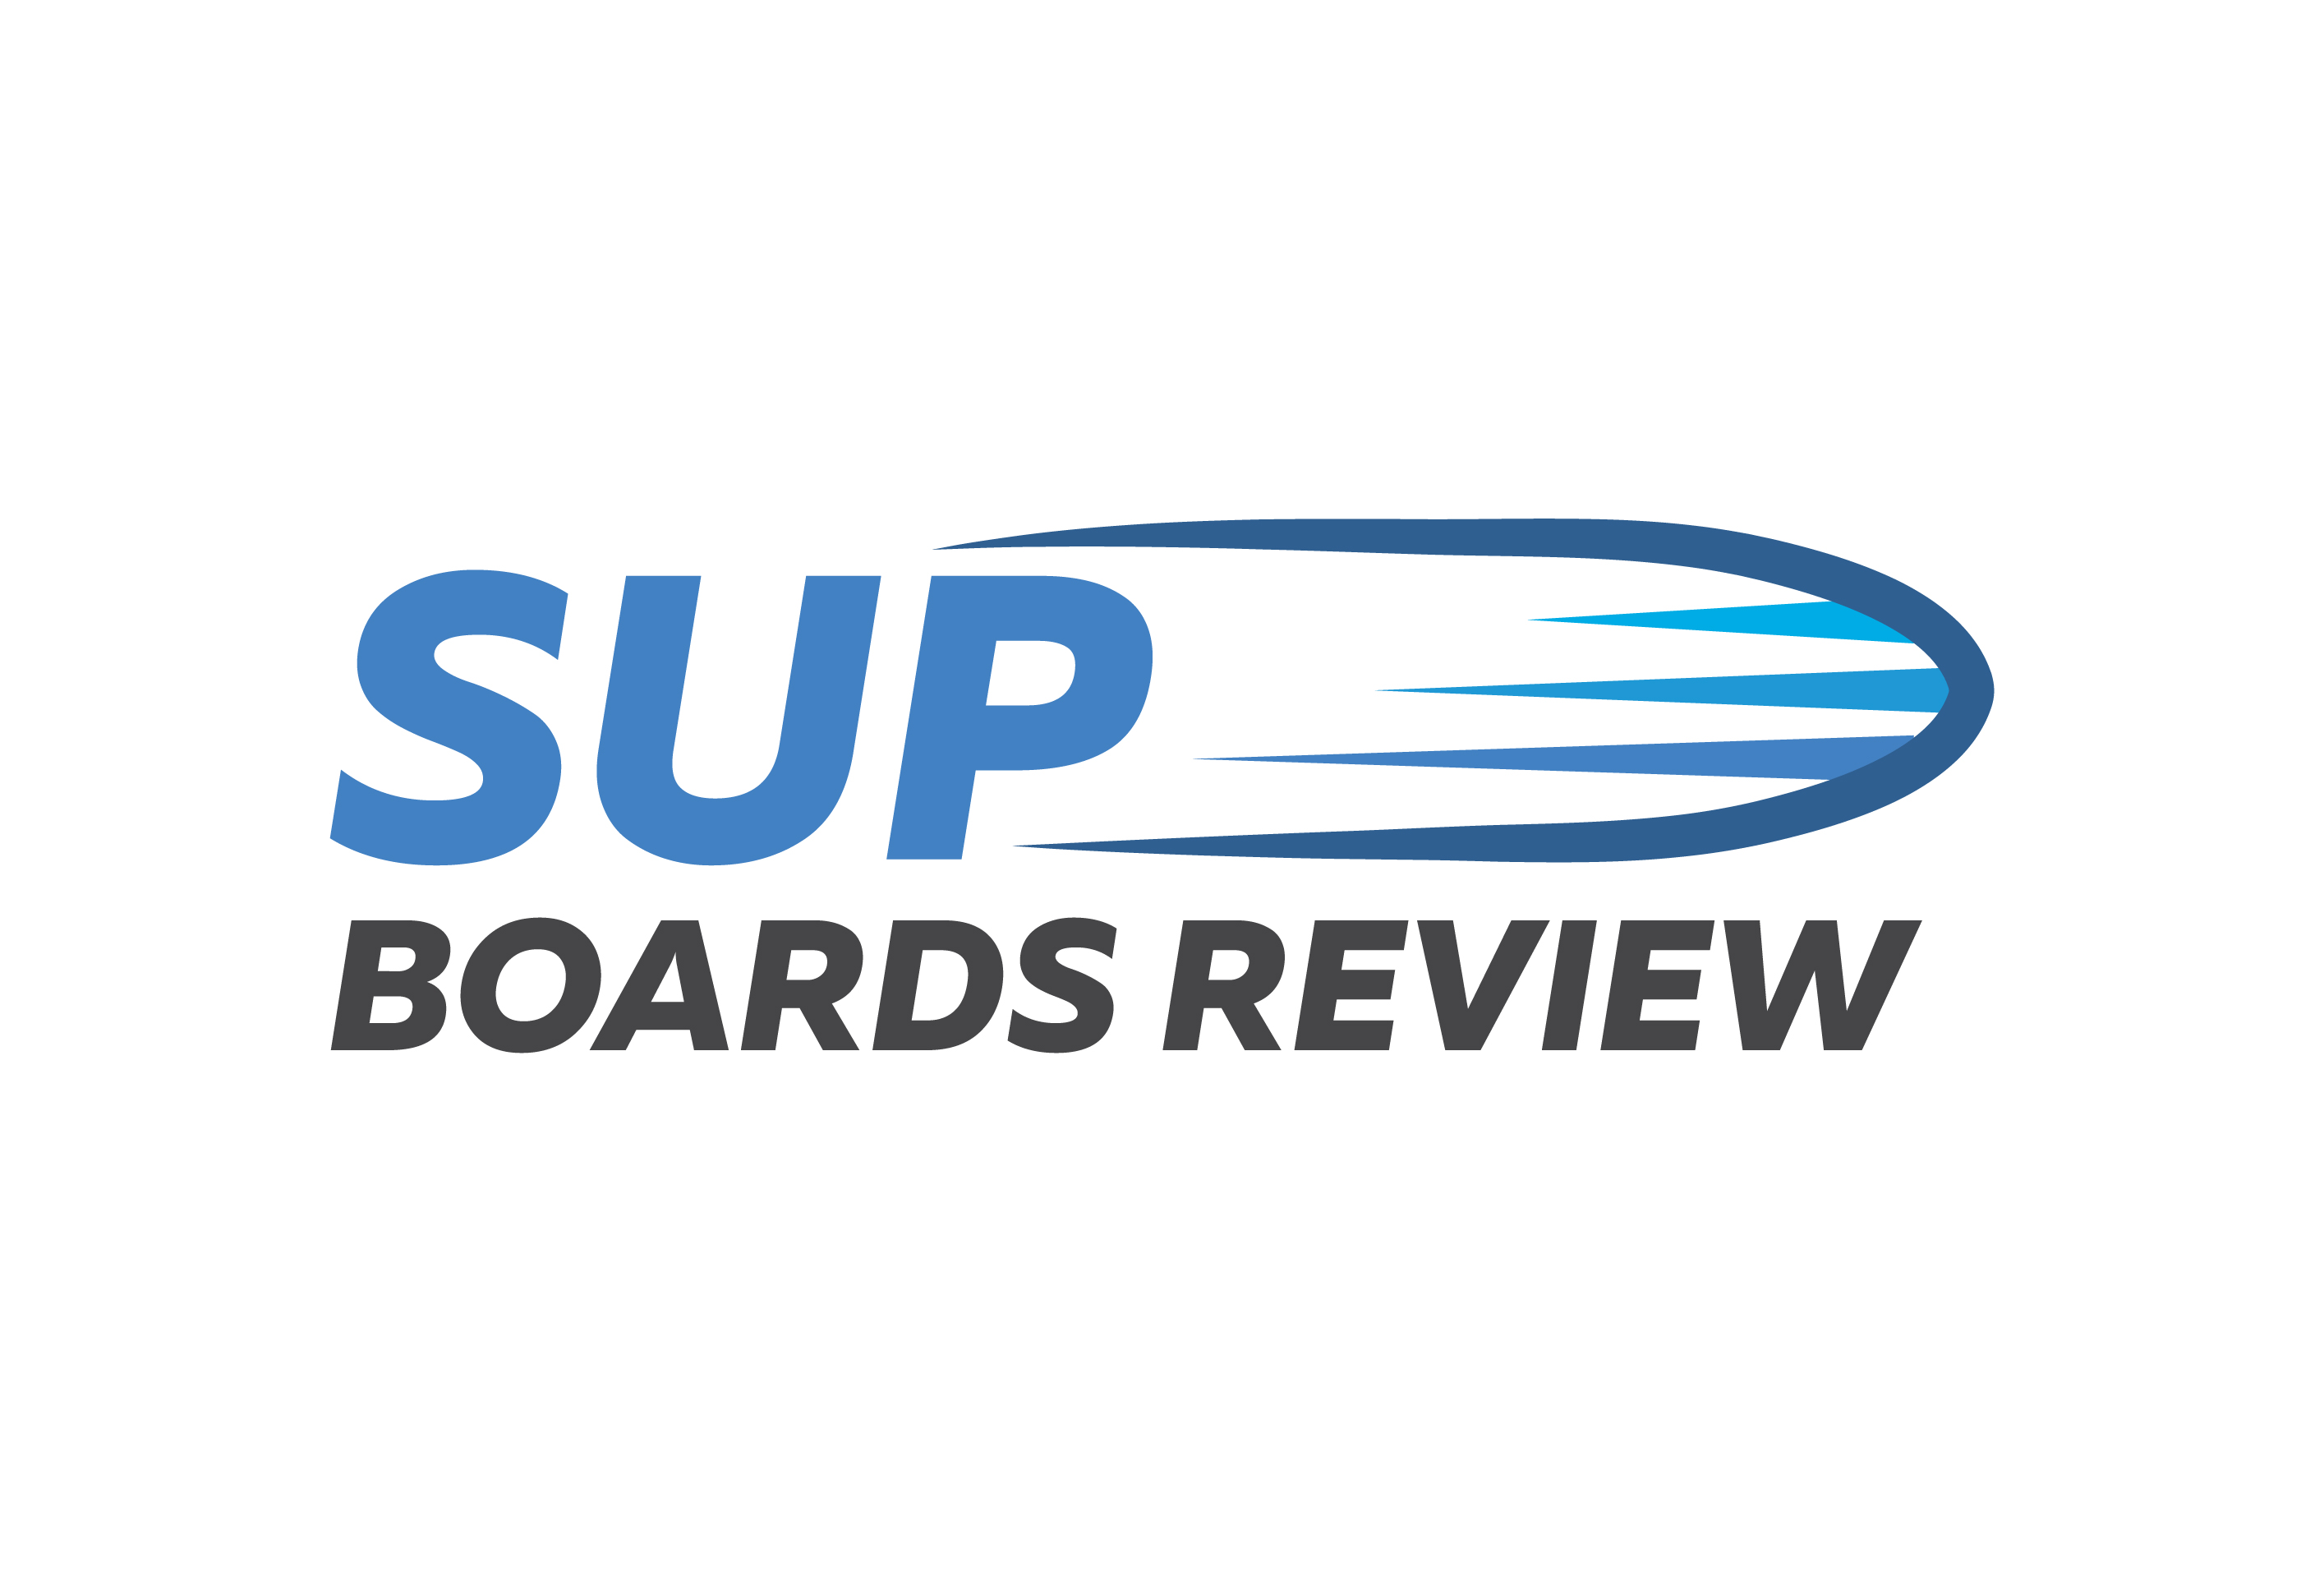 Sup Boards Review Launches Huge Promotion Offering Significant Savings On Past Season Paddle Boards